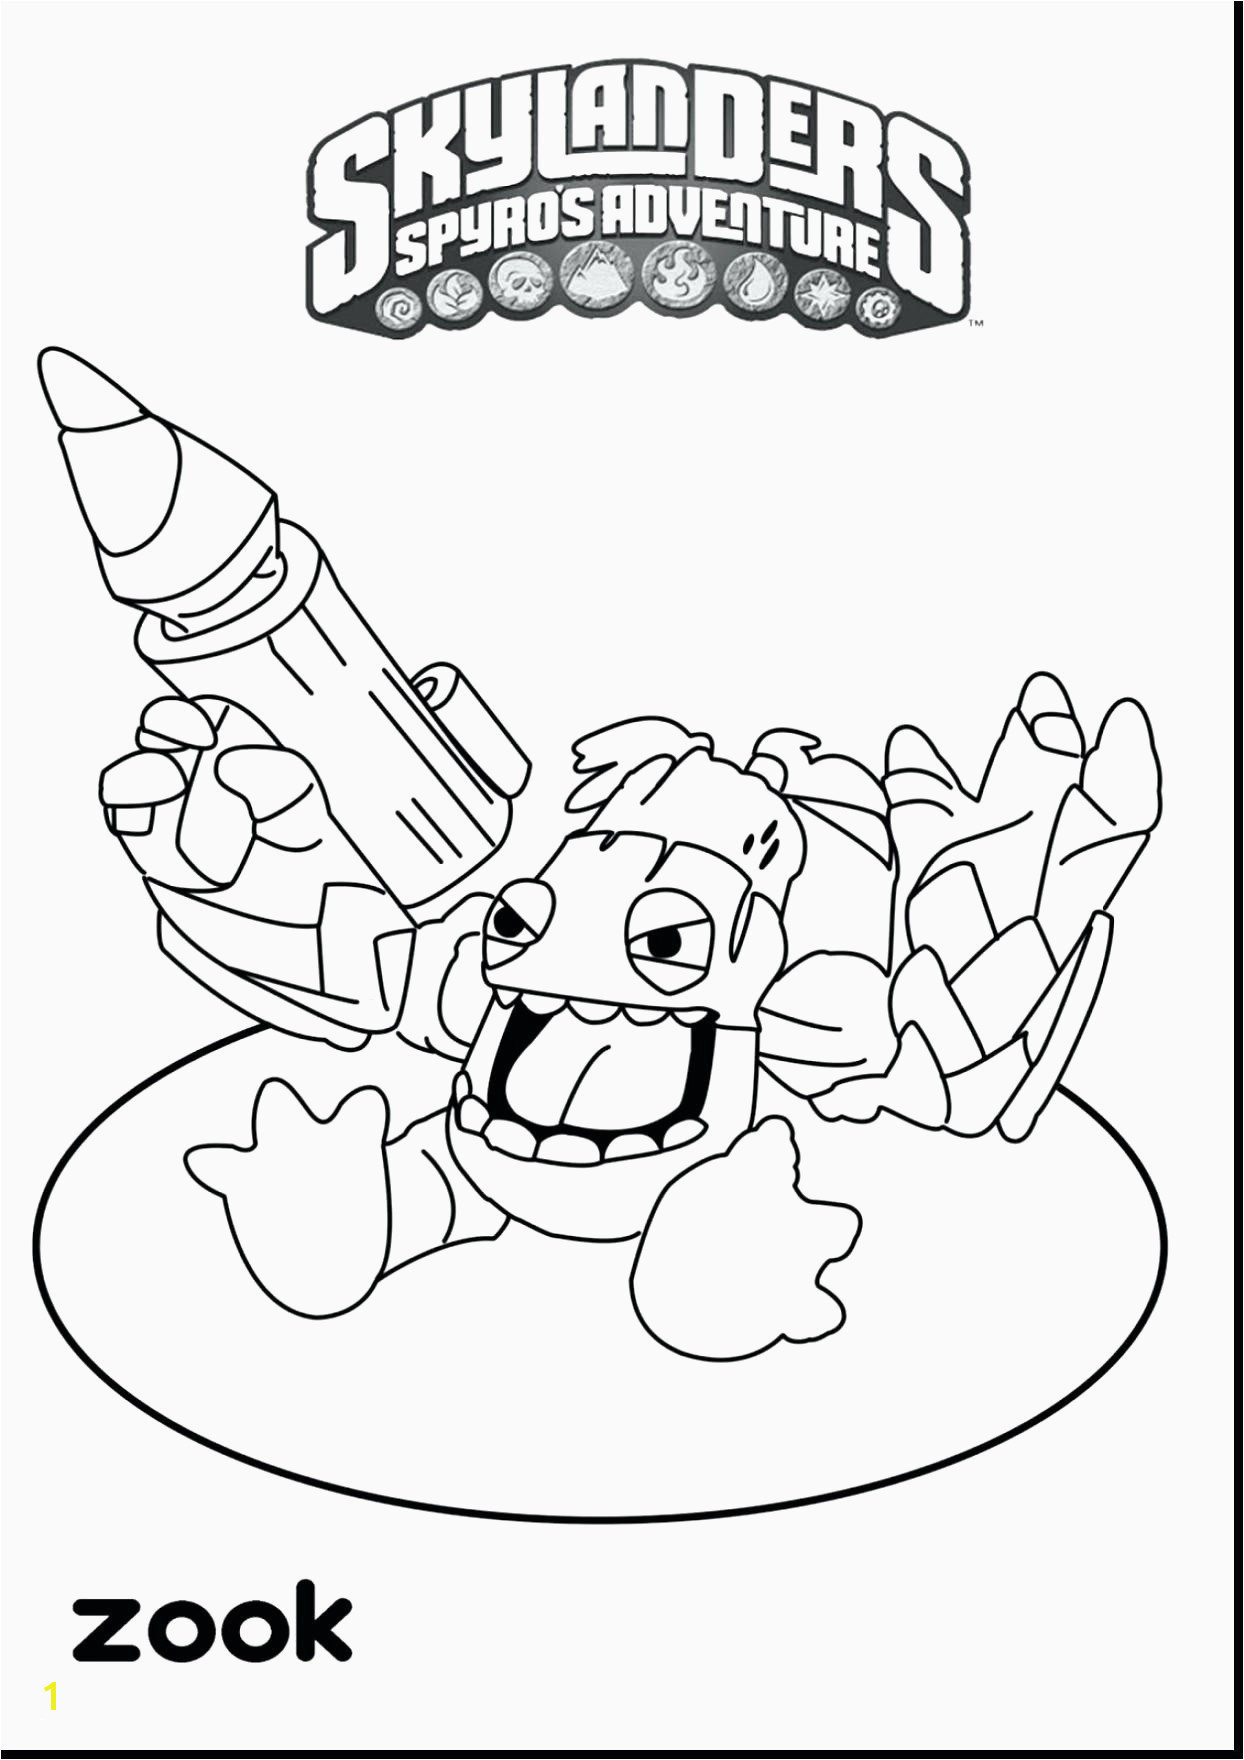 Supergirl Coloring Pages Lovely Color Coloring Pages New 45 Luxury Pics Print Color Pages Supergirl